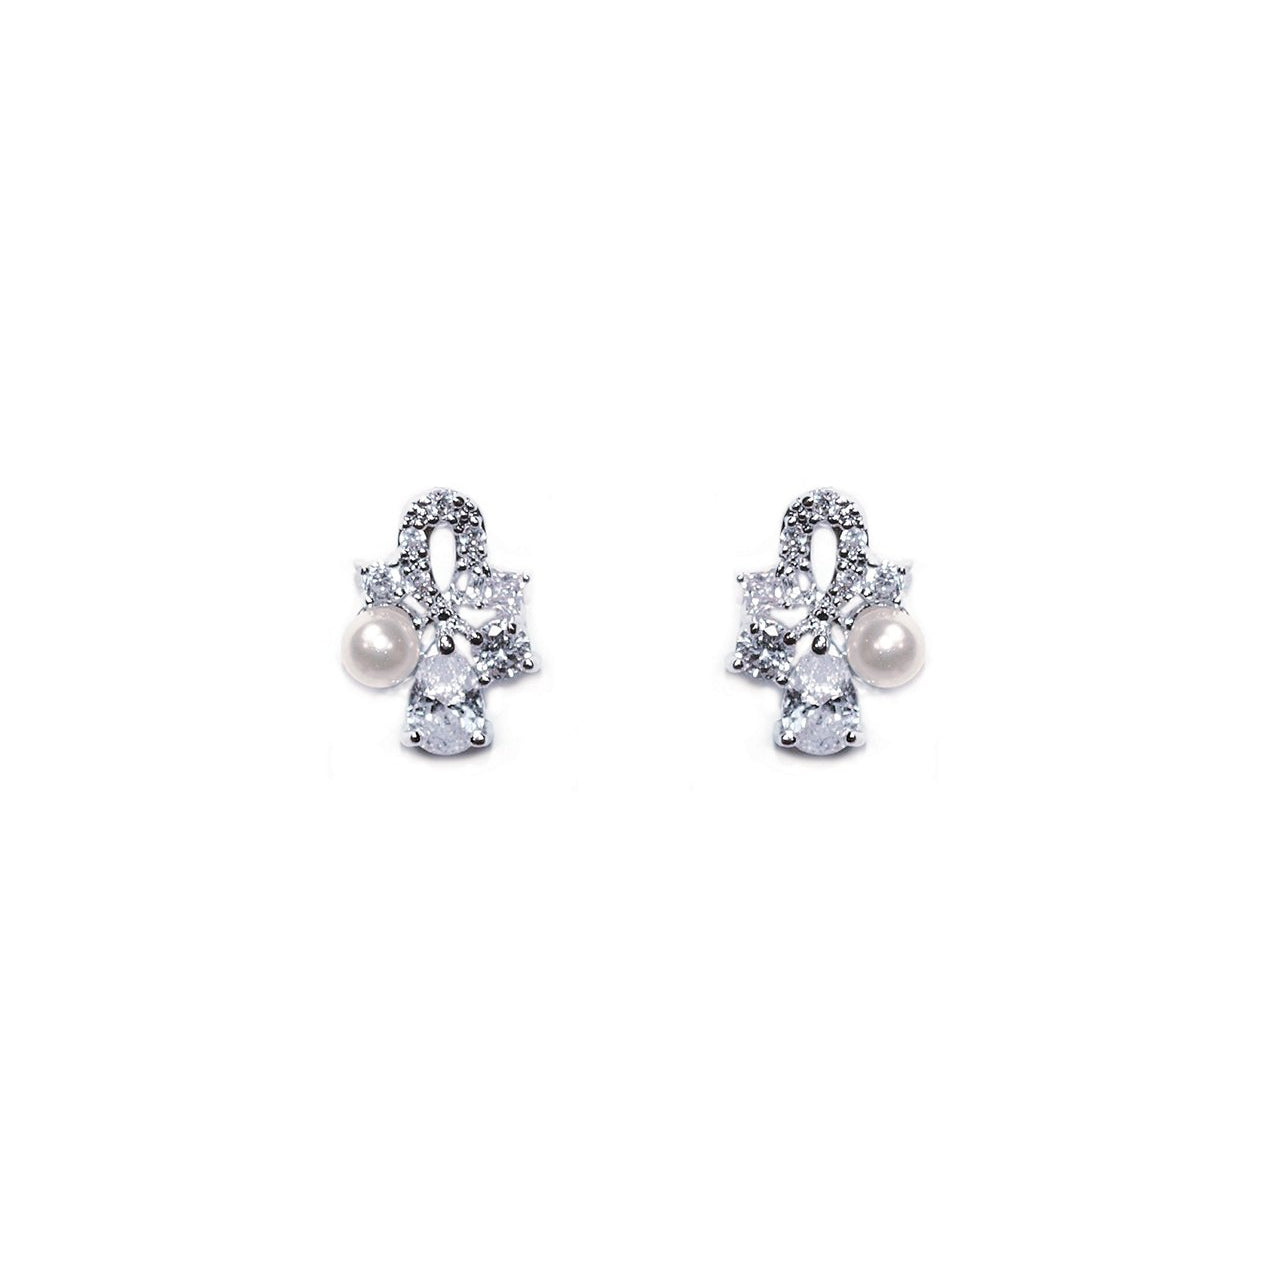 BOUCLES D'OREILLES<br>Portofino - MP Paris